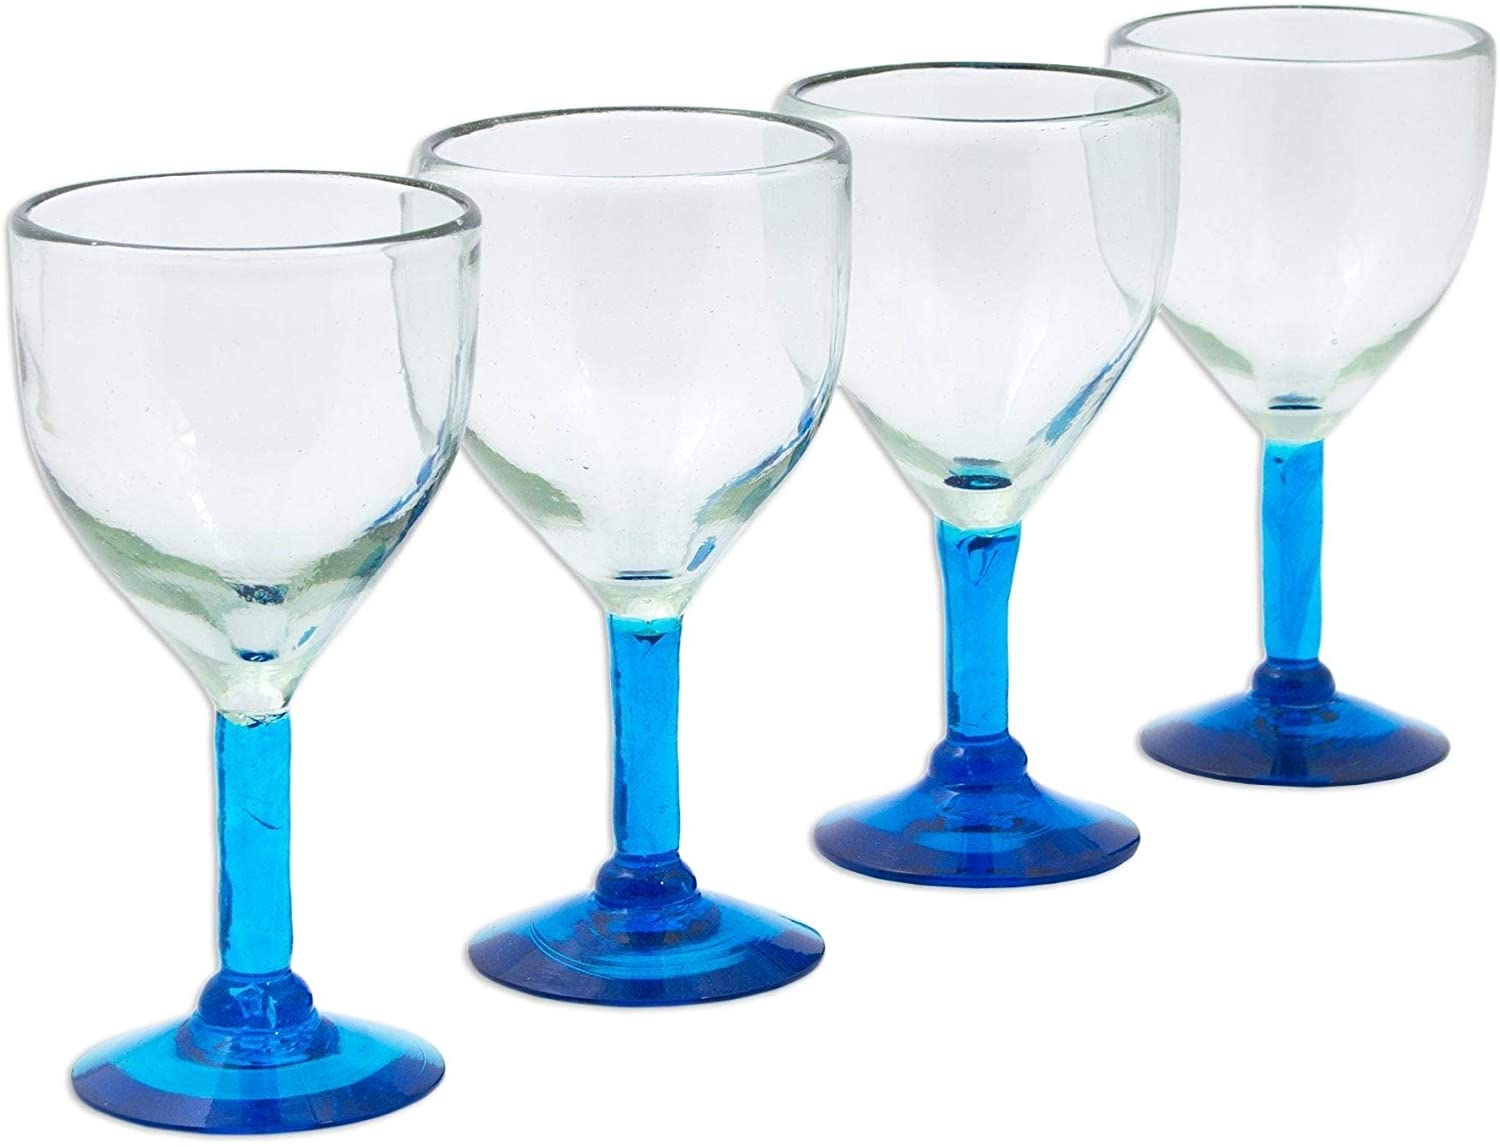 "Caribbean Blown Glass Goblets Set 4 Glasses 3 5"" X 7"" Blue Piece Handmade"